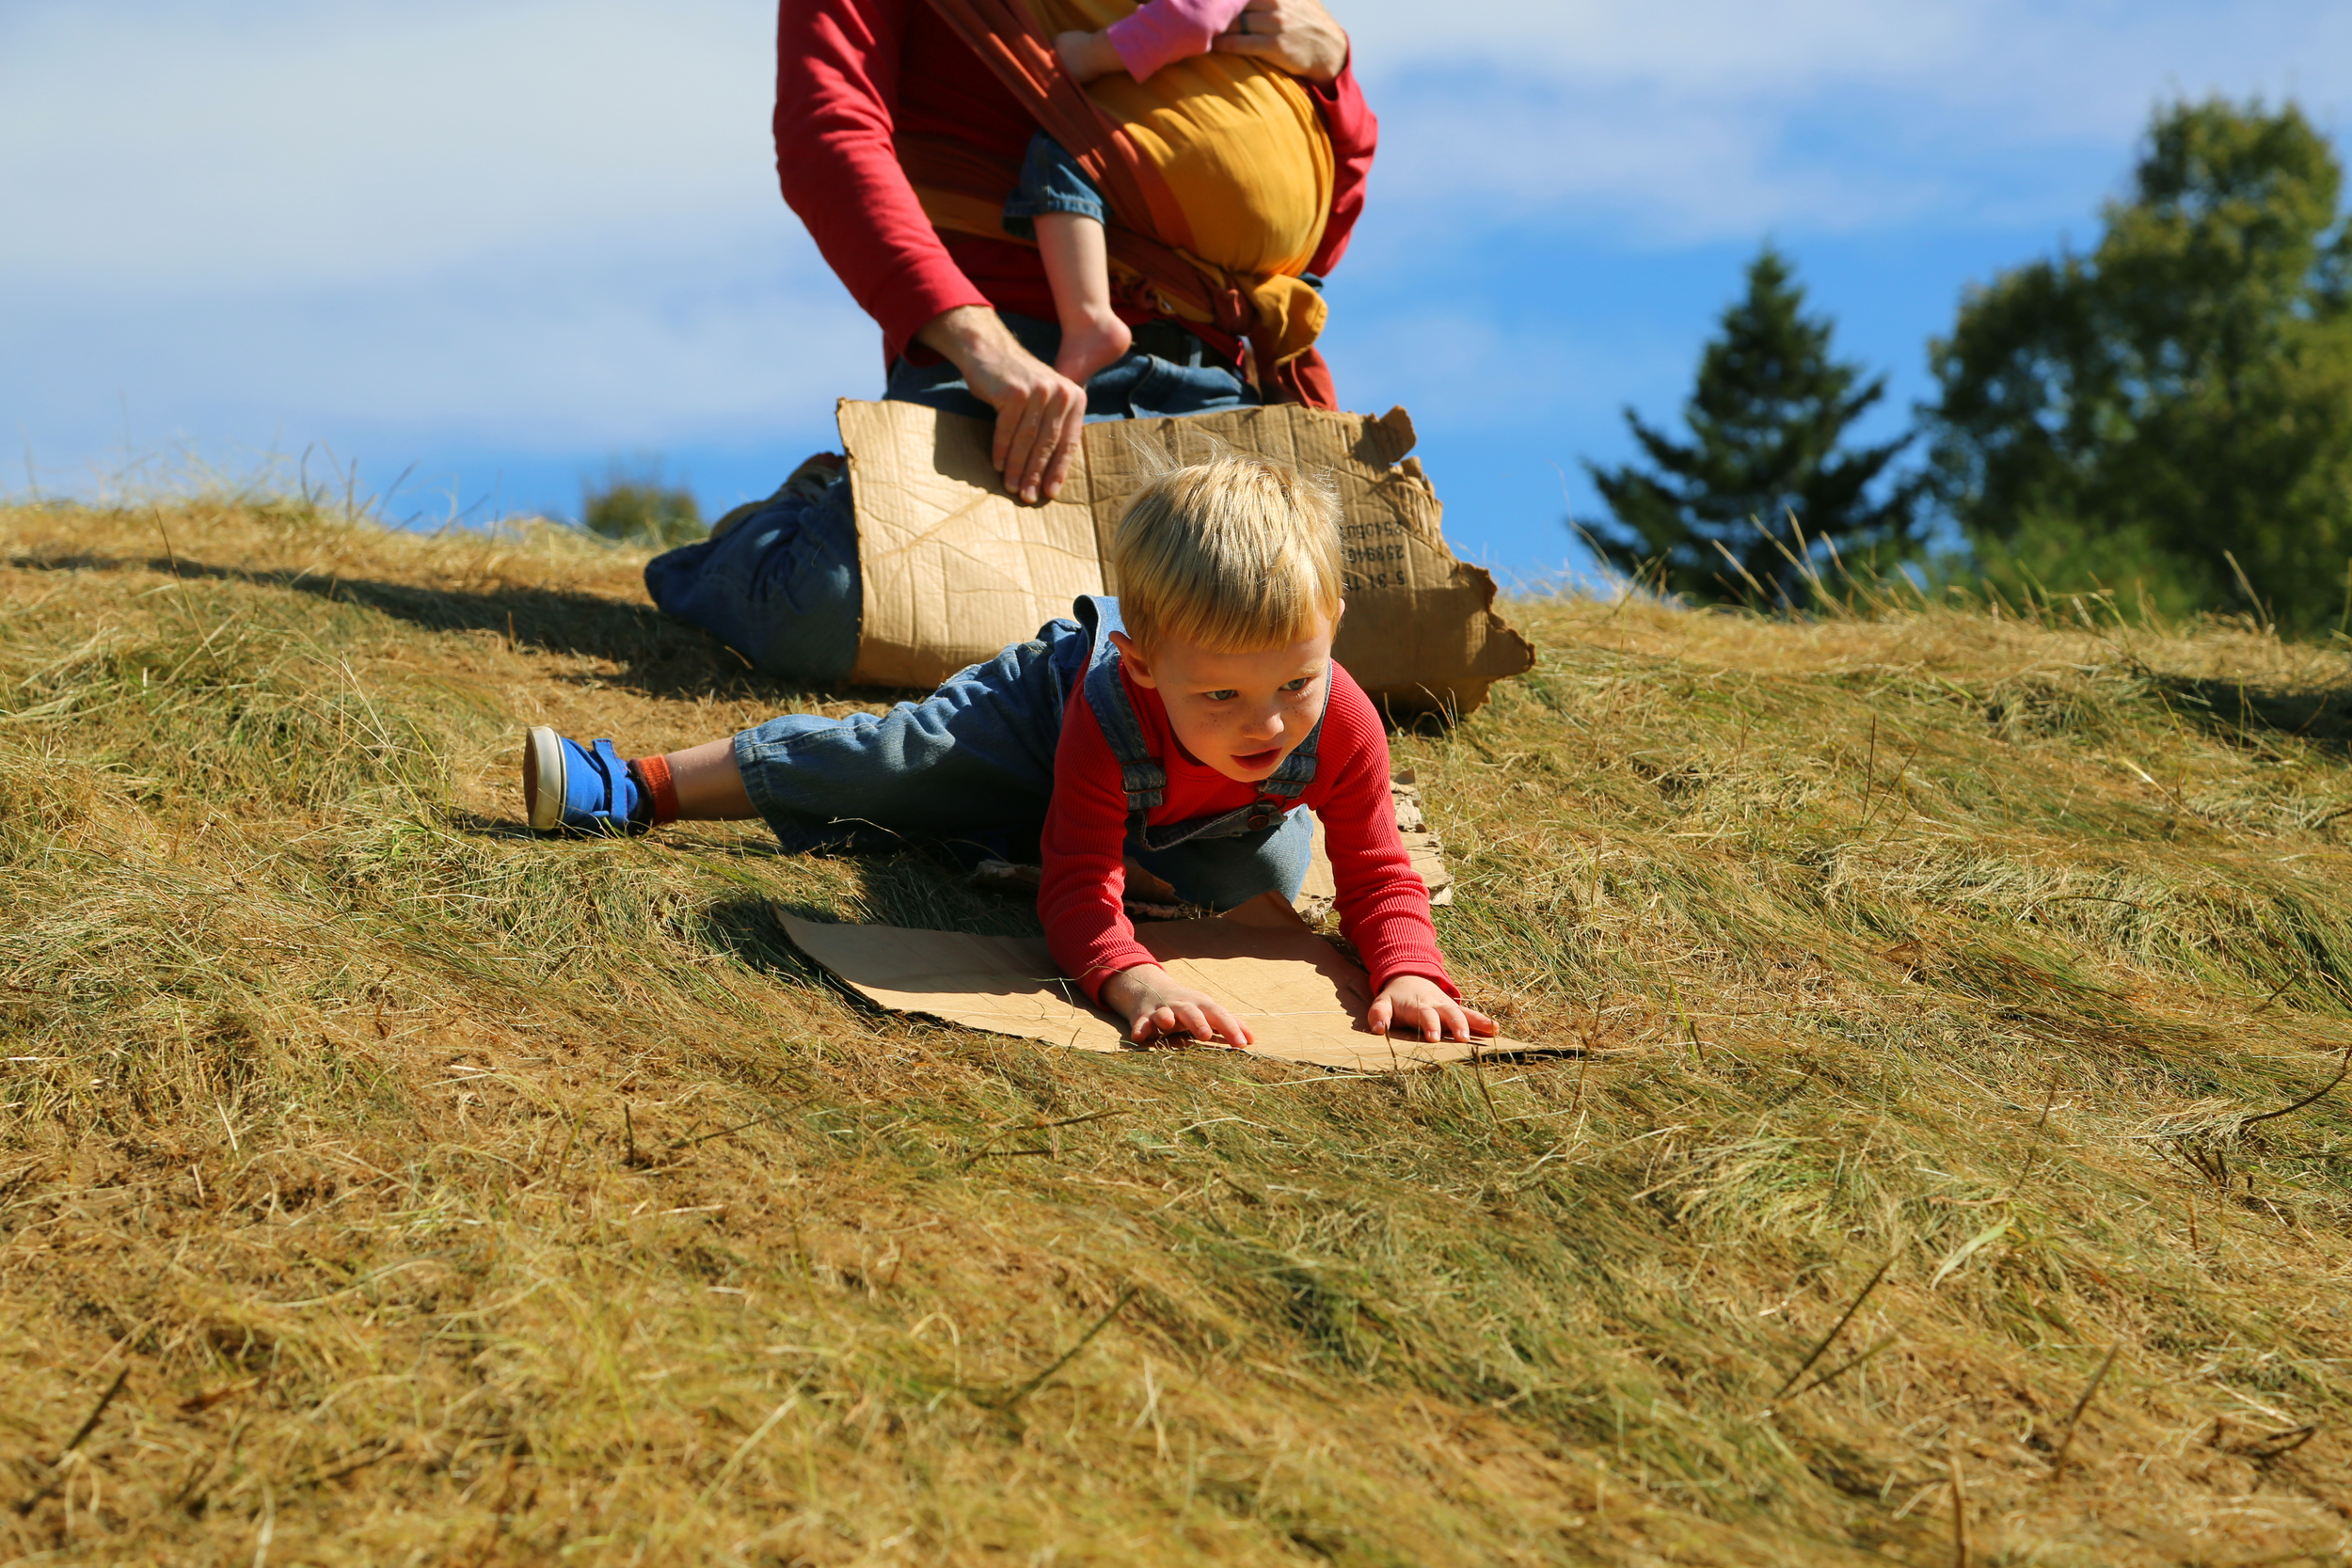 This desert kid was excited to slide down the grassy hill on his magic carpet.